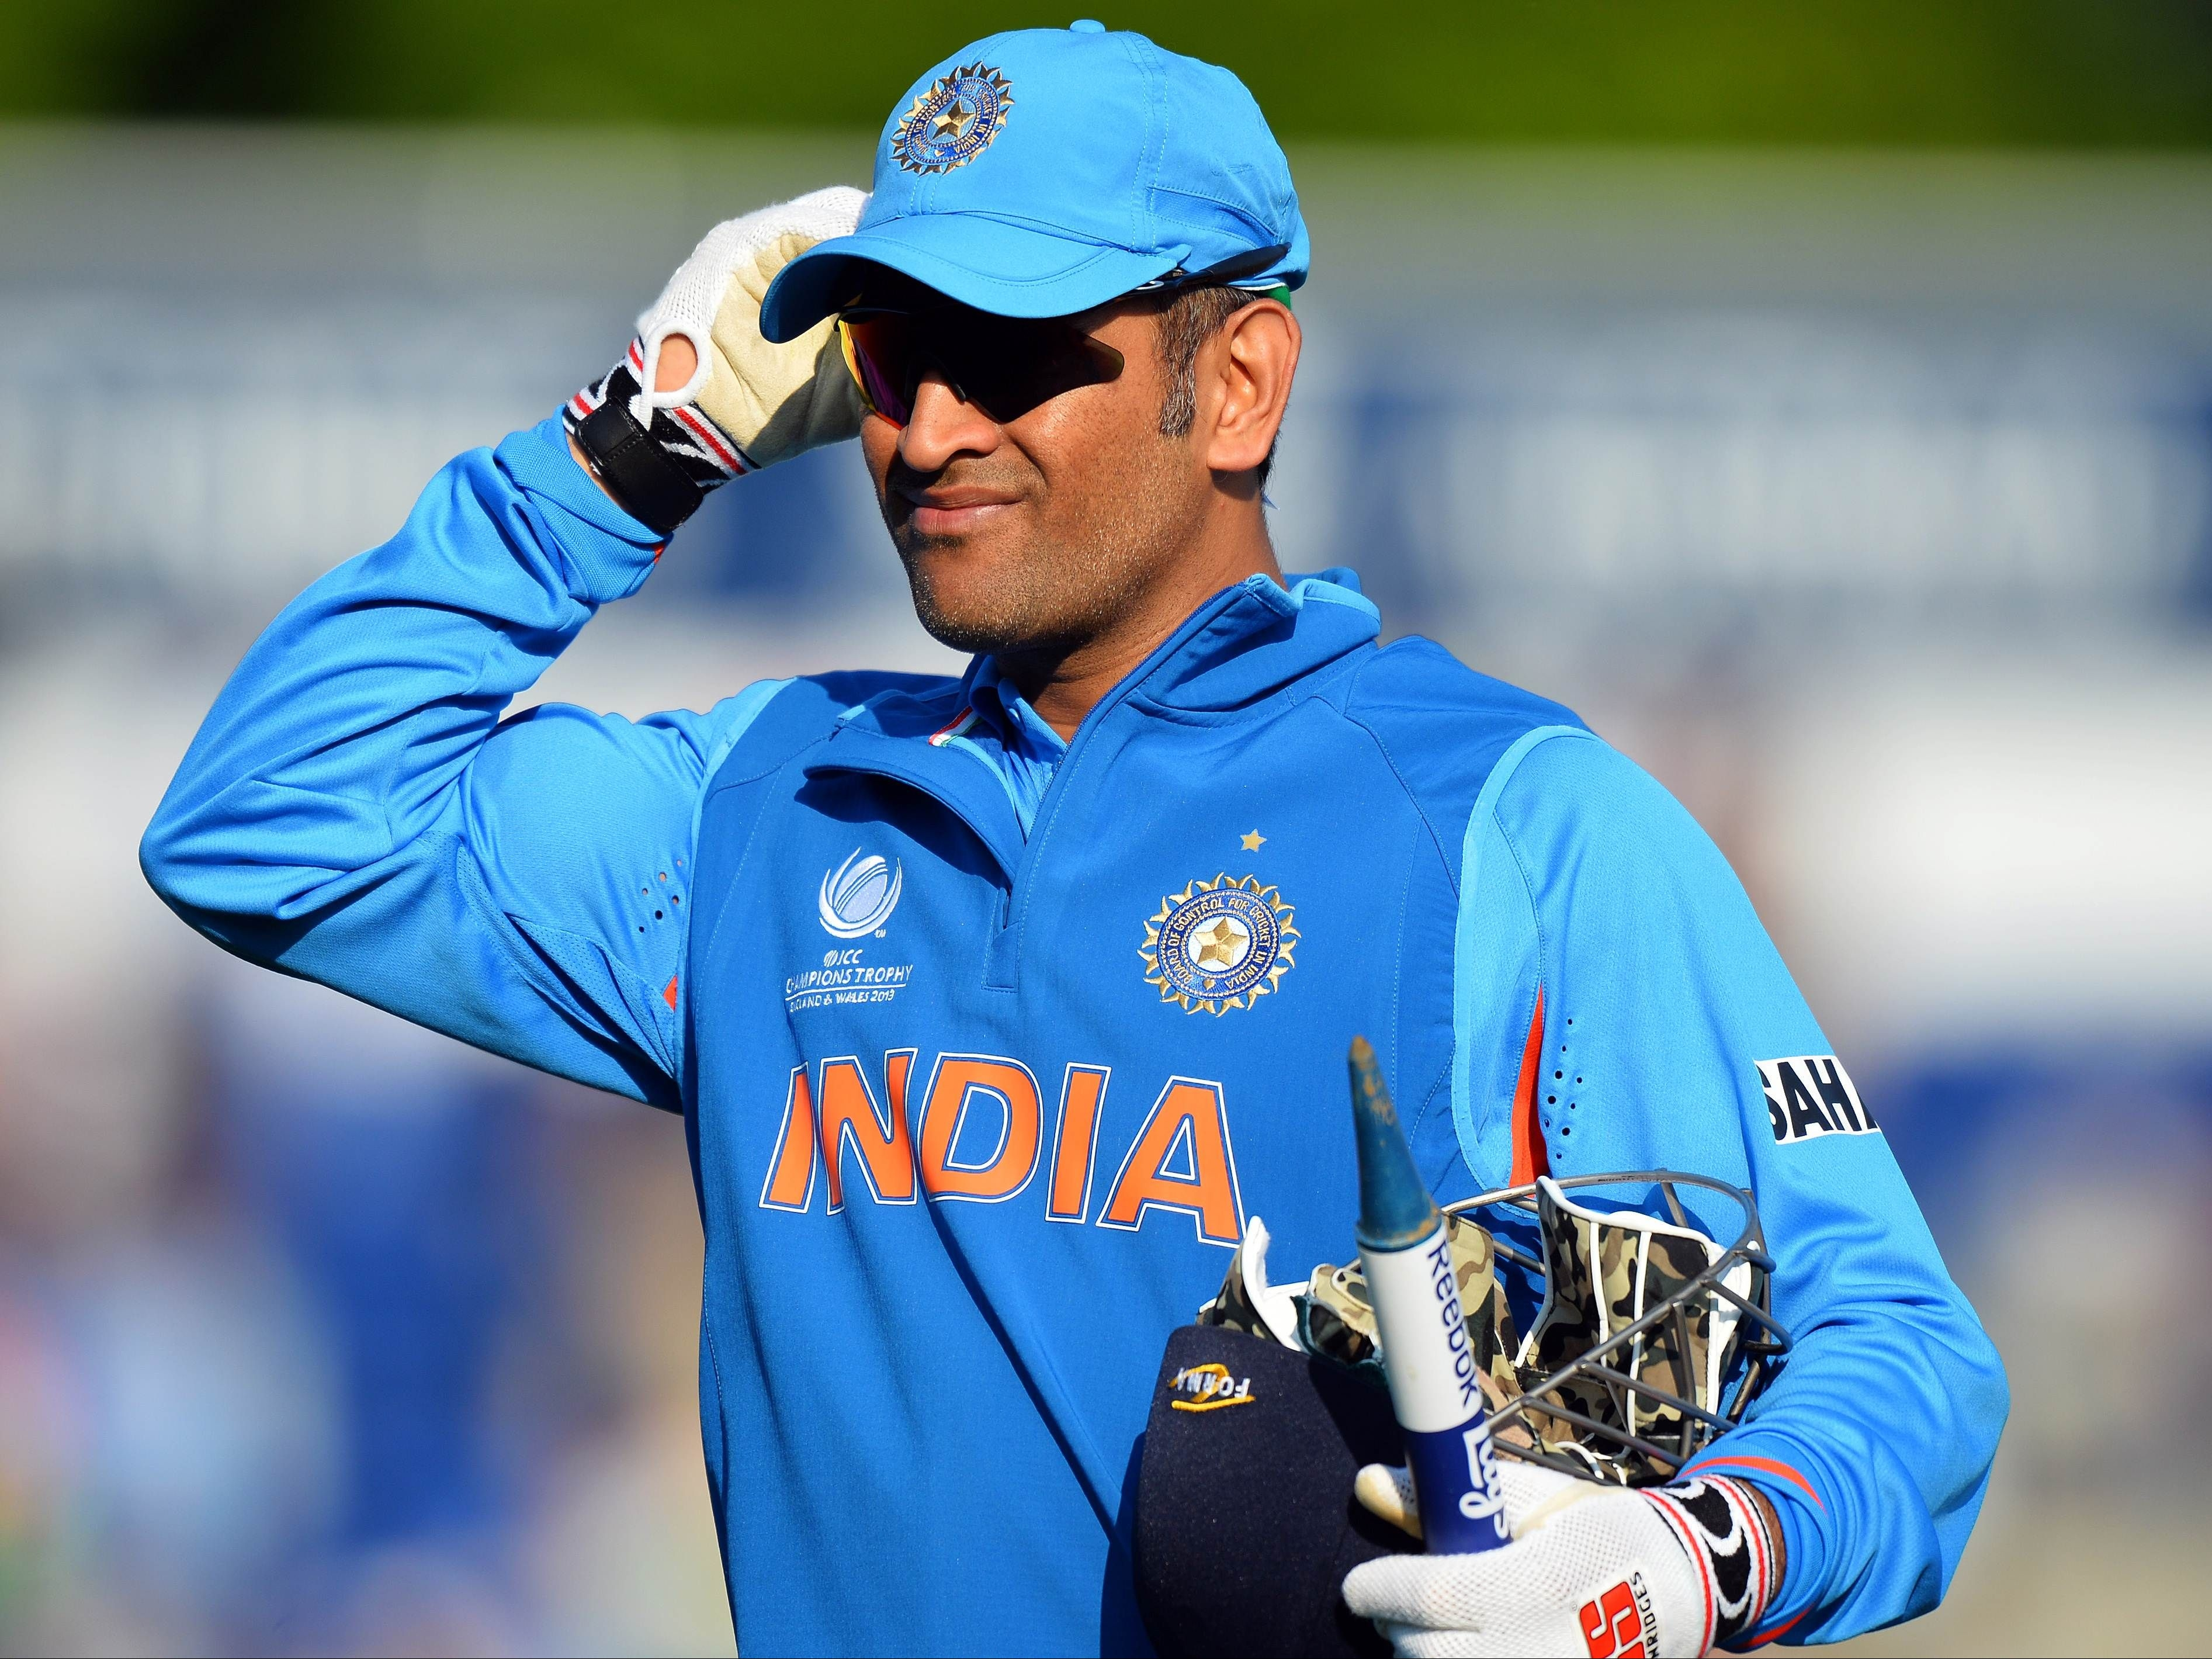 Dhoni Wallpapers High Resolution And Quality Download